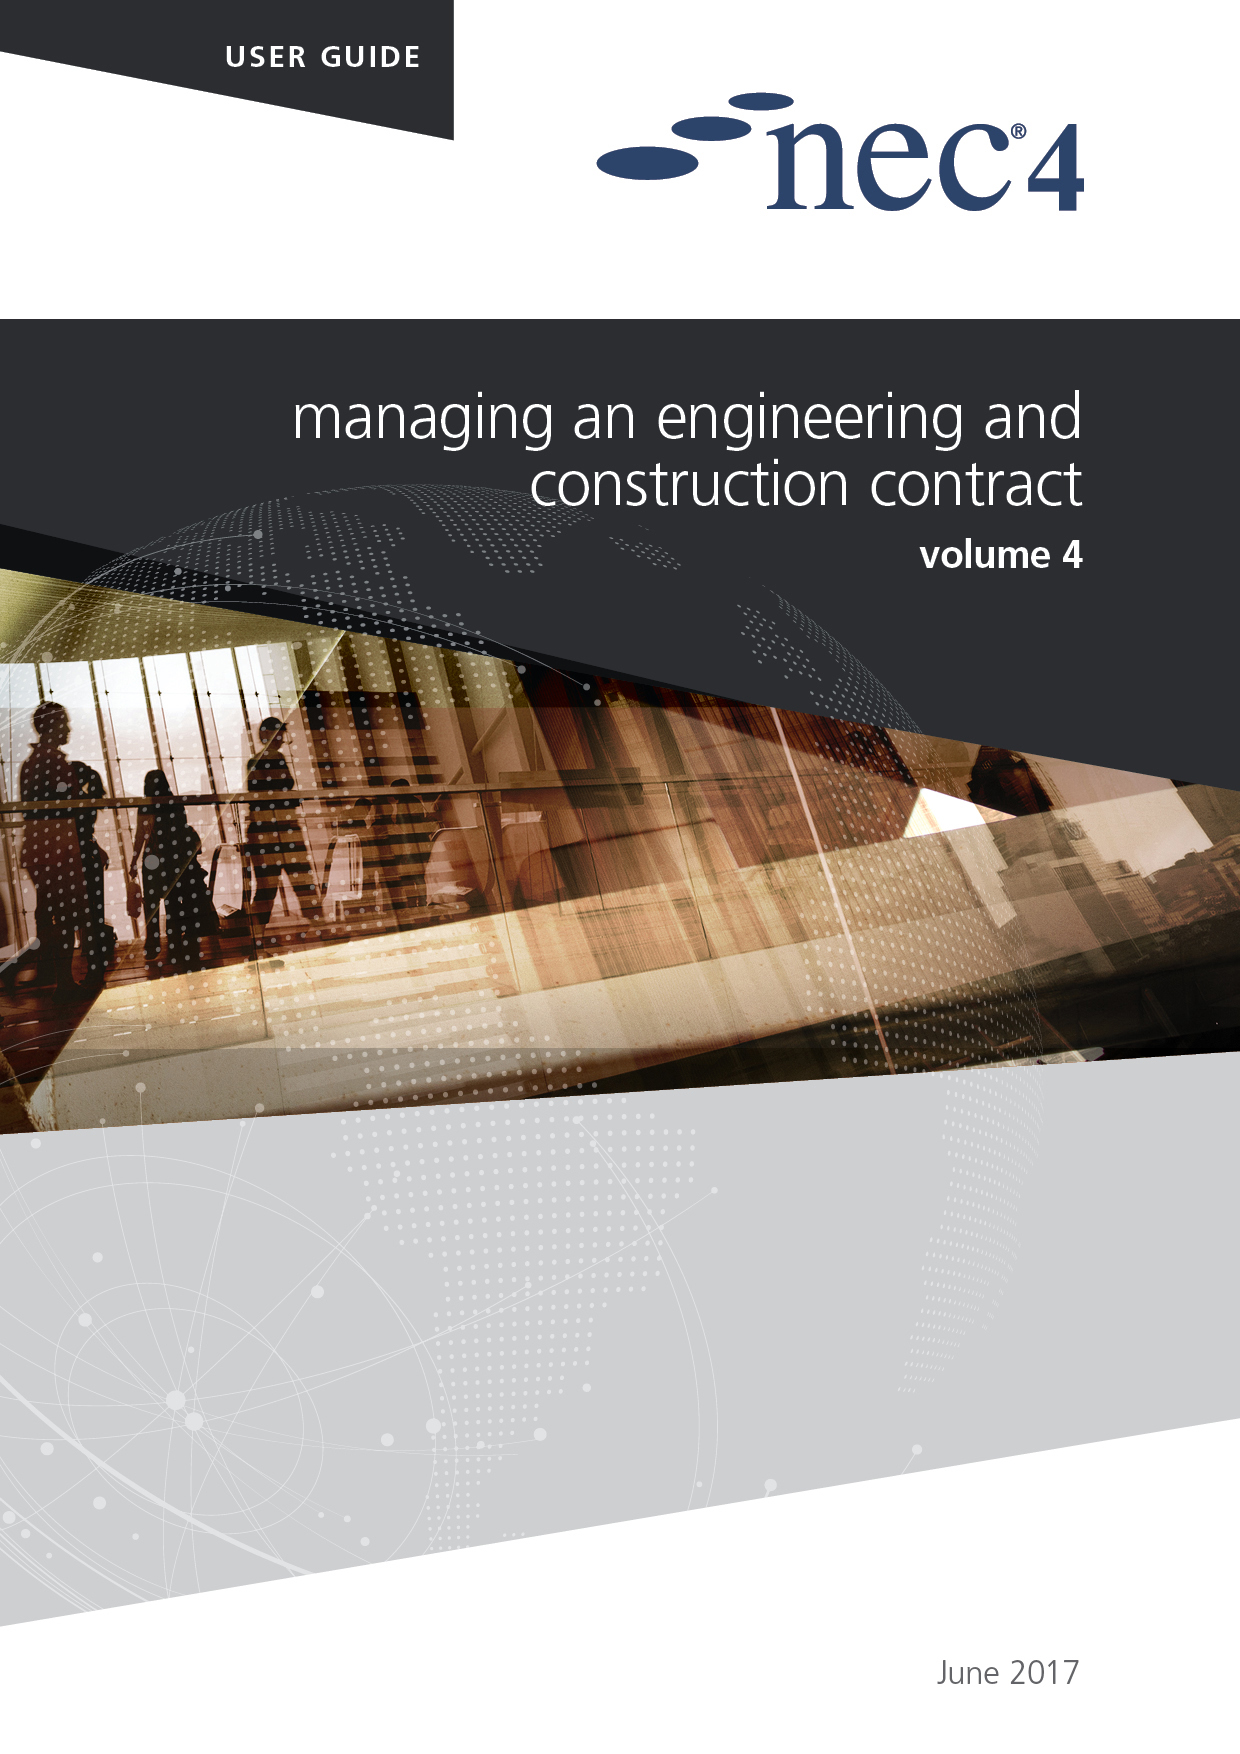 NEC4: Managing an Engineering and Construction Contract